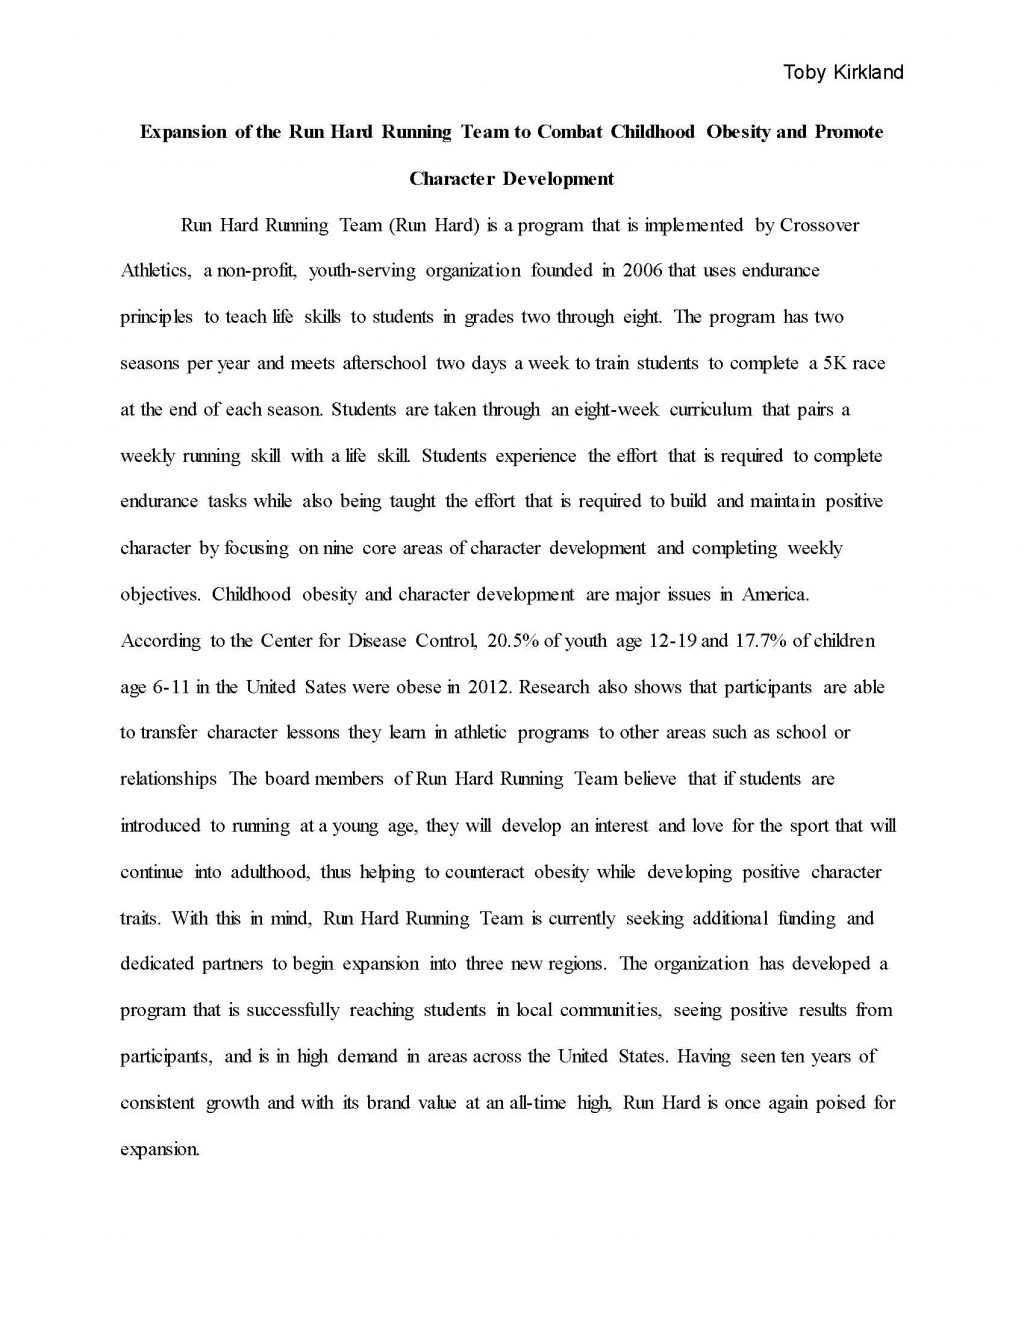 012 Childhood Obesity Research Paper Topics Essay Sample Barca Fontanacountryinn Com Child Example20 Awesome About Full